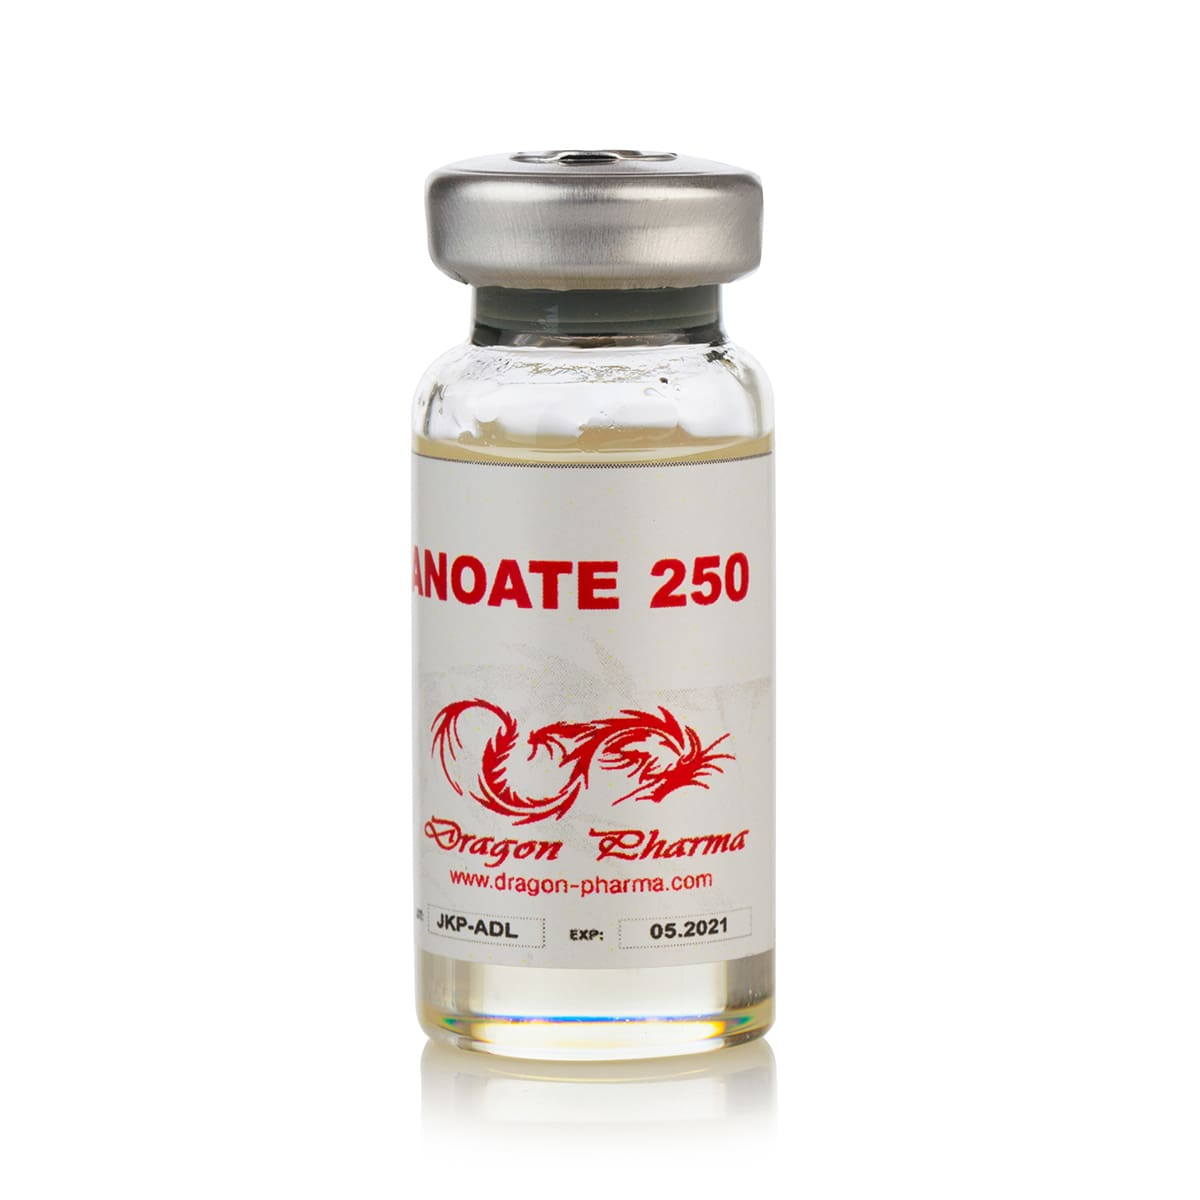 Undecanoate 250 (Testosterone Undecanoate) – 10 мл. х 250 мг.